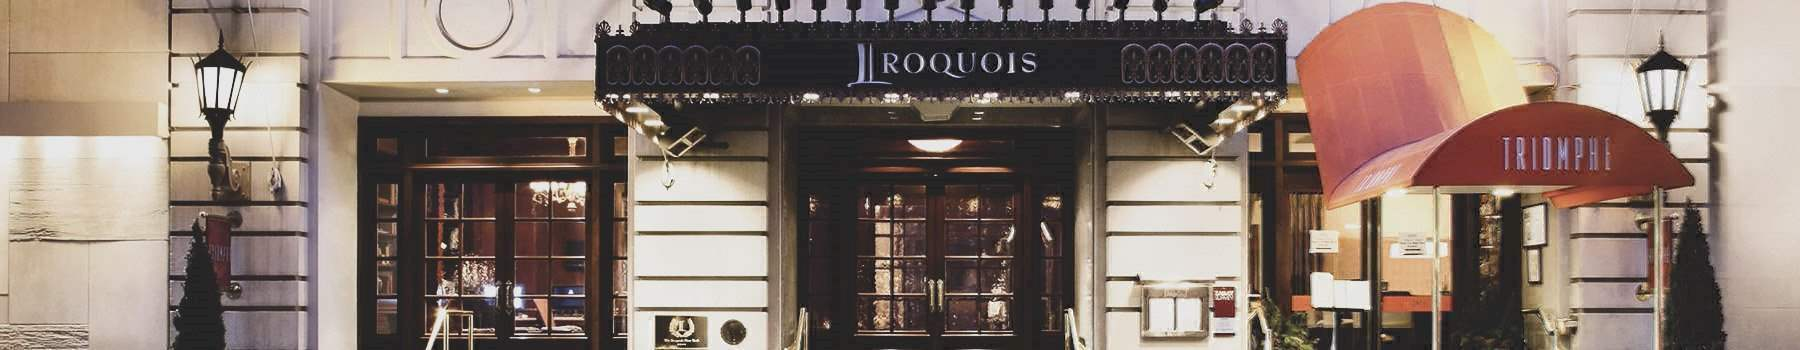 About The Iroquois Hotel New York